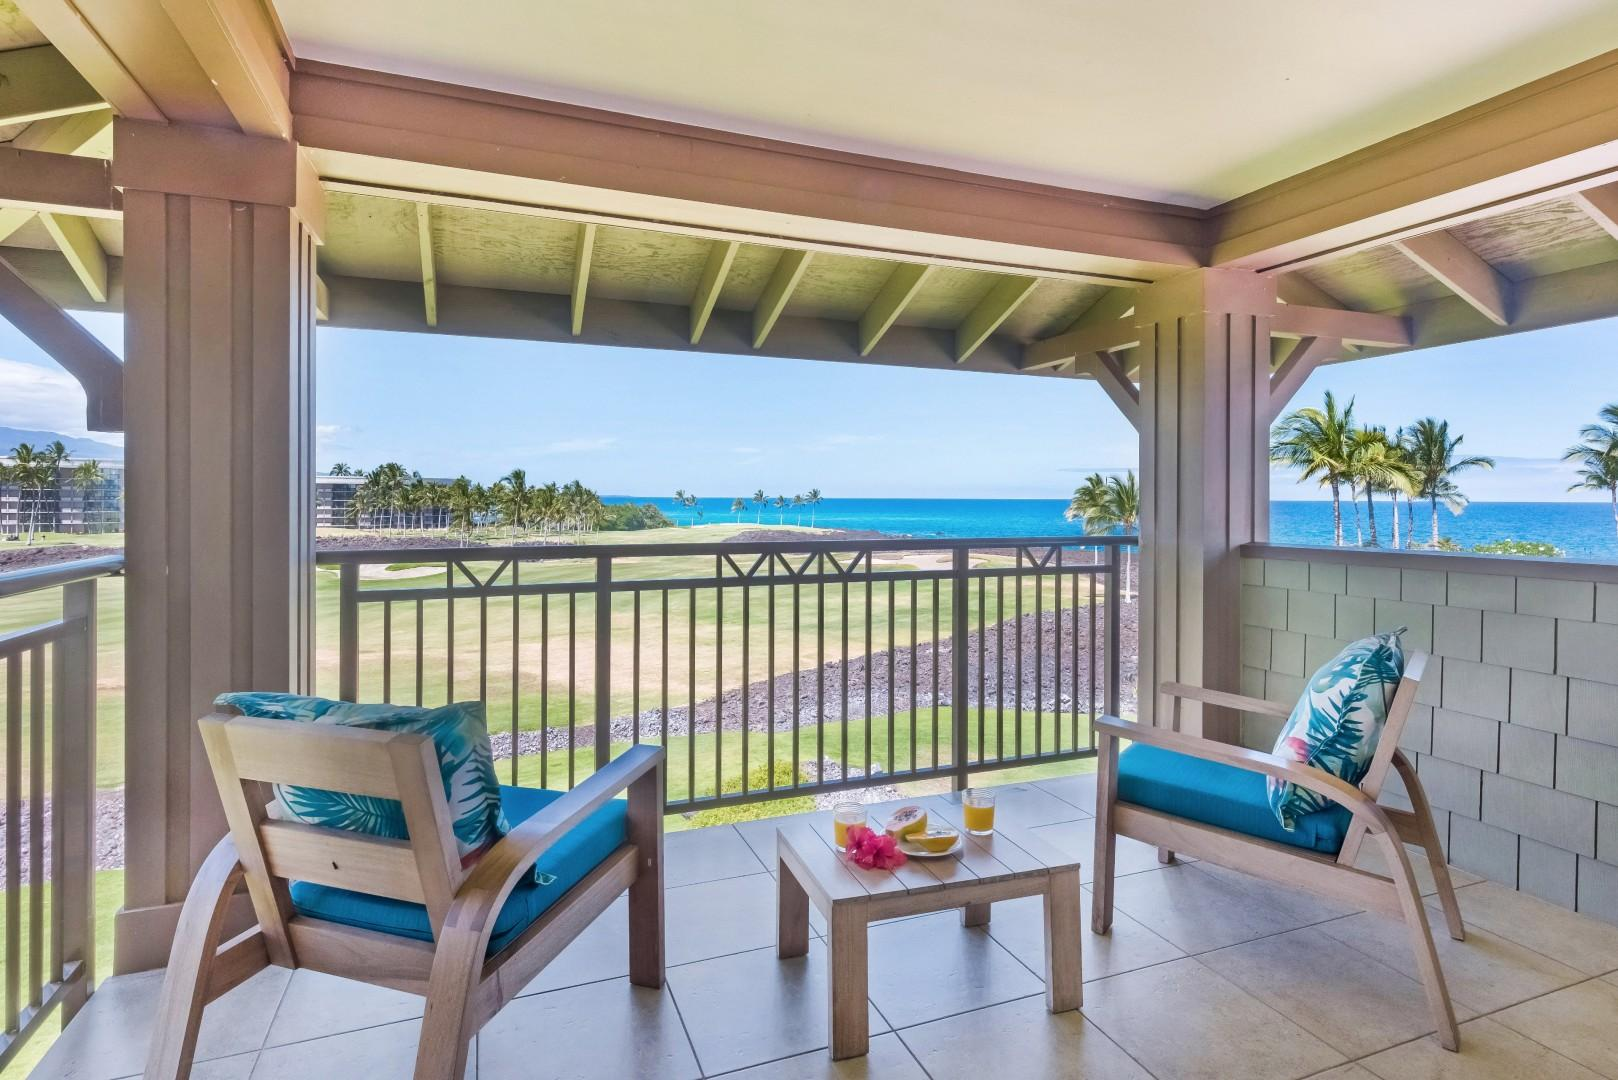 Take in the spectacular views and ocean breezes from the master bedroom lanai!